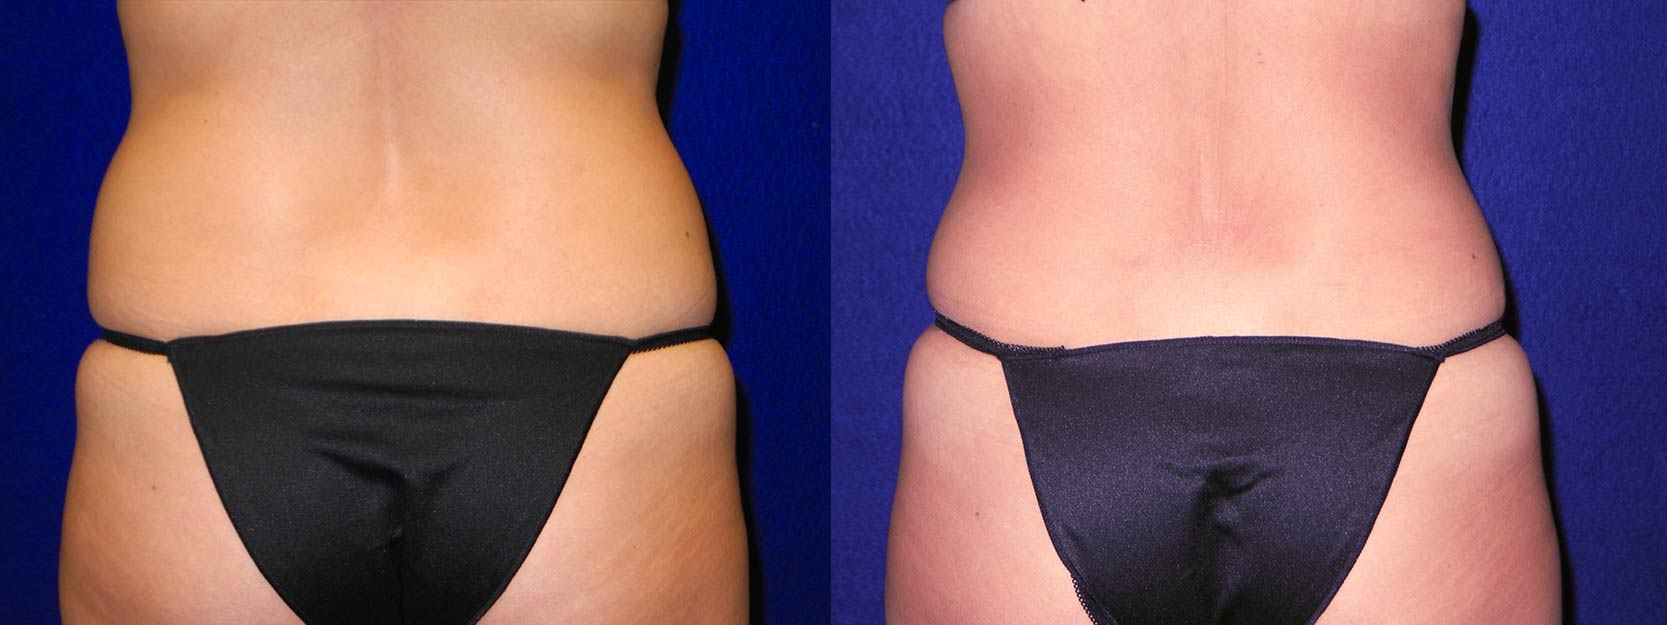 Back View - Tummy Tuck and Liposuction